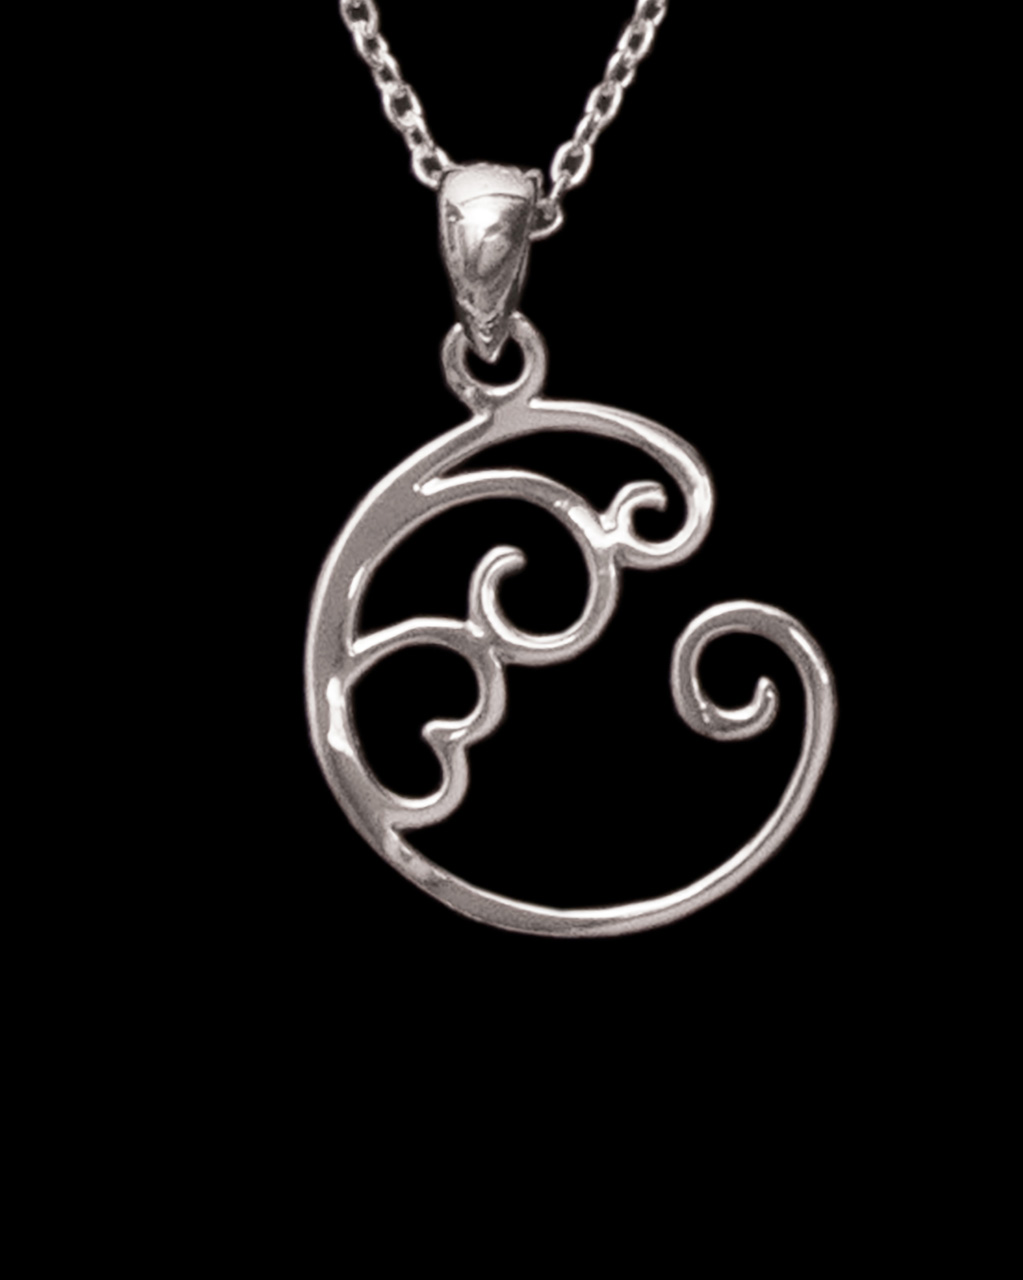 sterling silver necklace of a wave design with a heart in the center